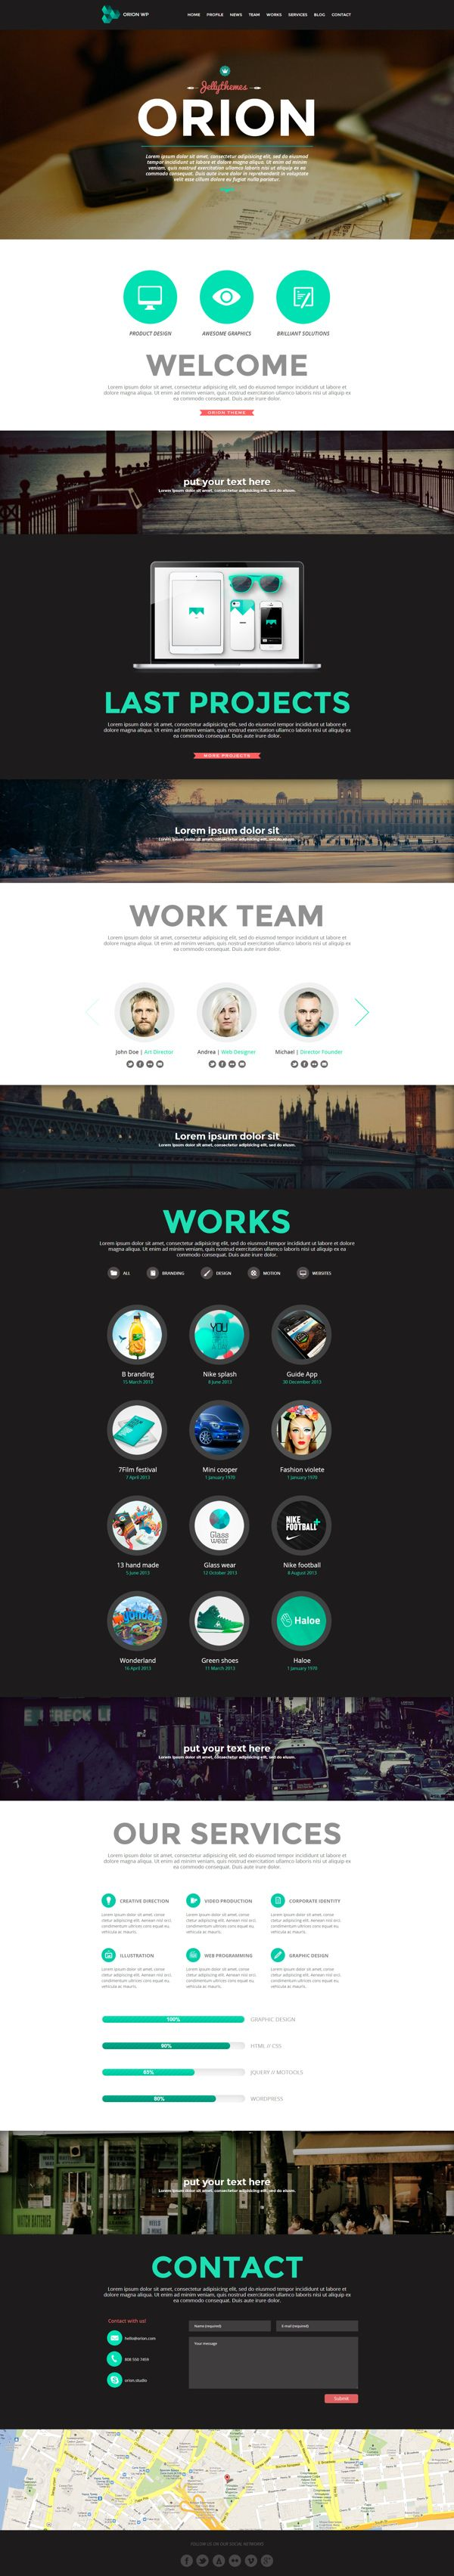 Orion - Responsive One Page WordPress Template by Zizaza - design ocean , via Behance.